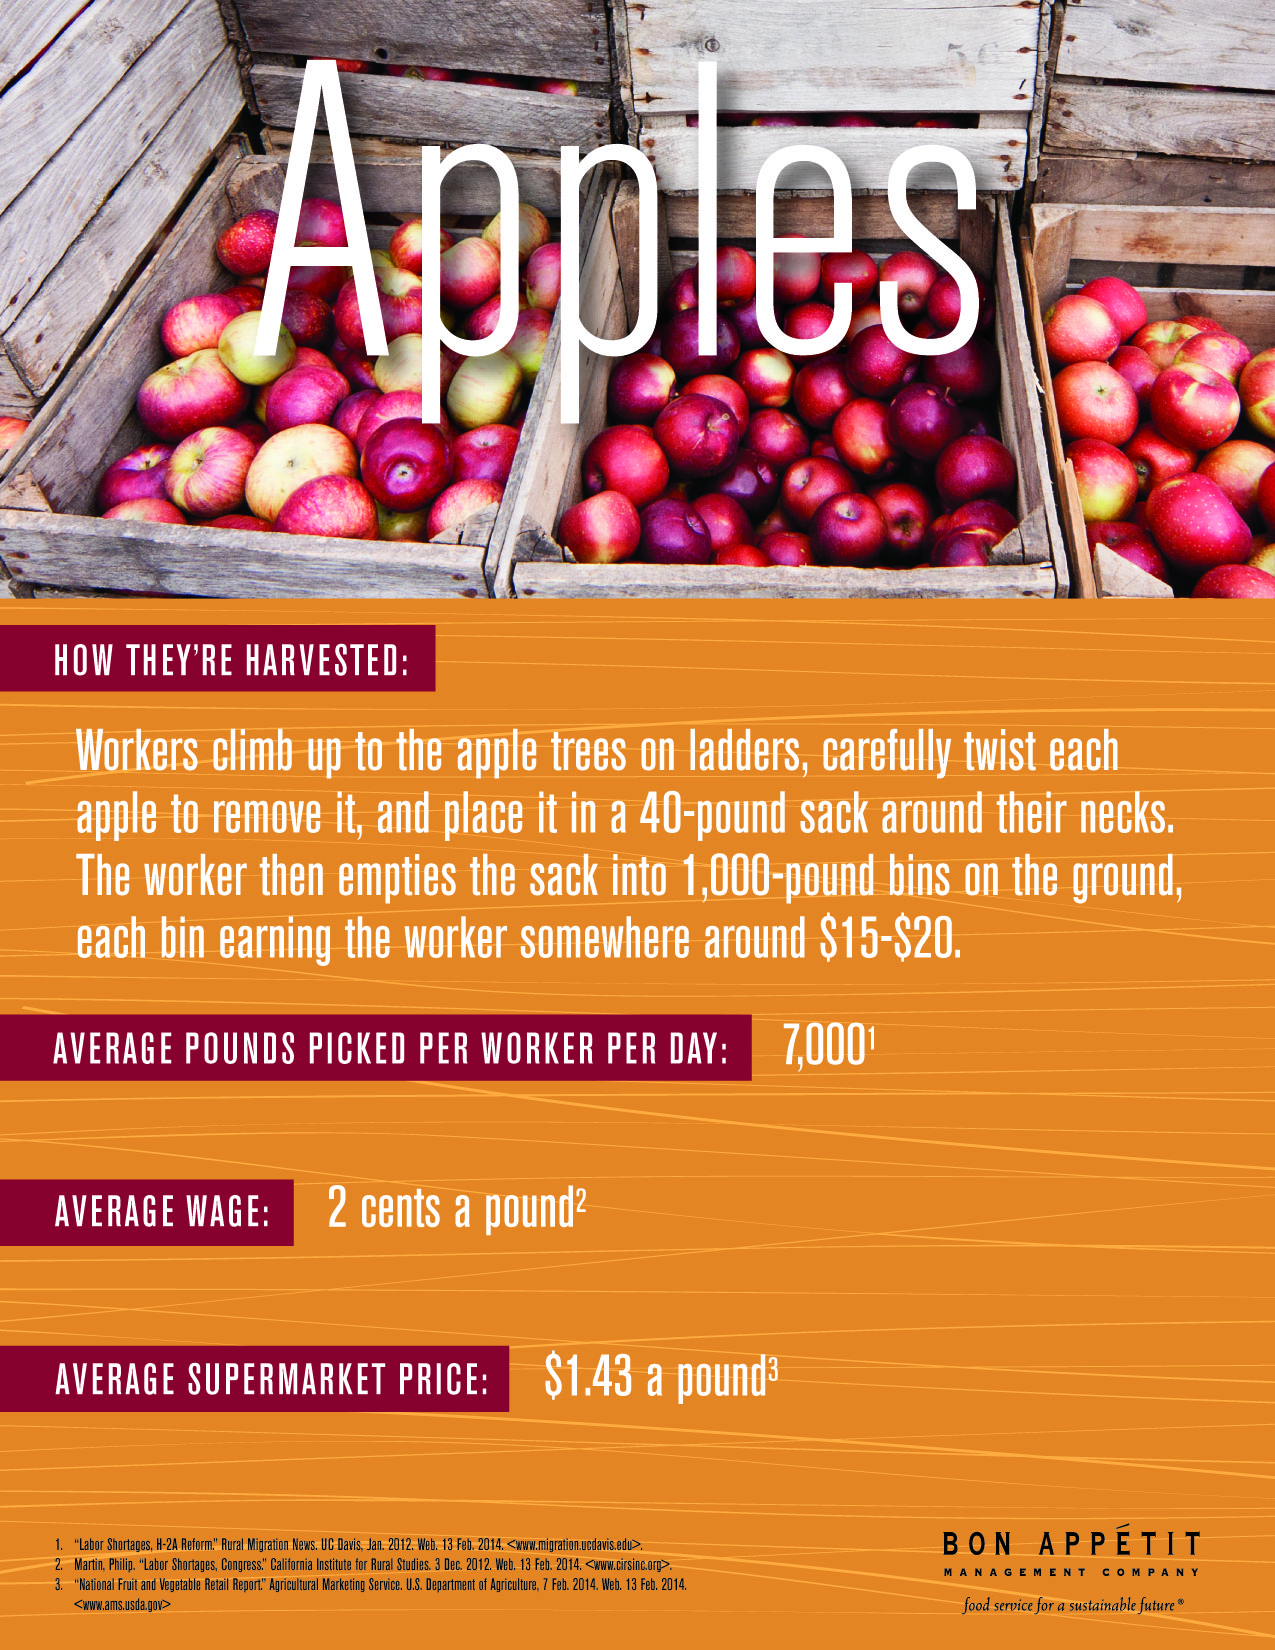 14-4621TableMini-Apples4.jpg